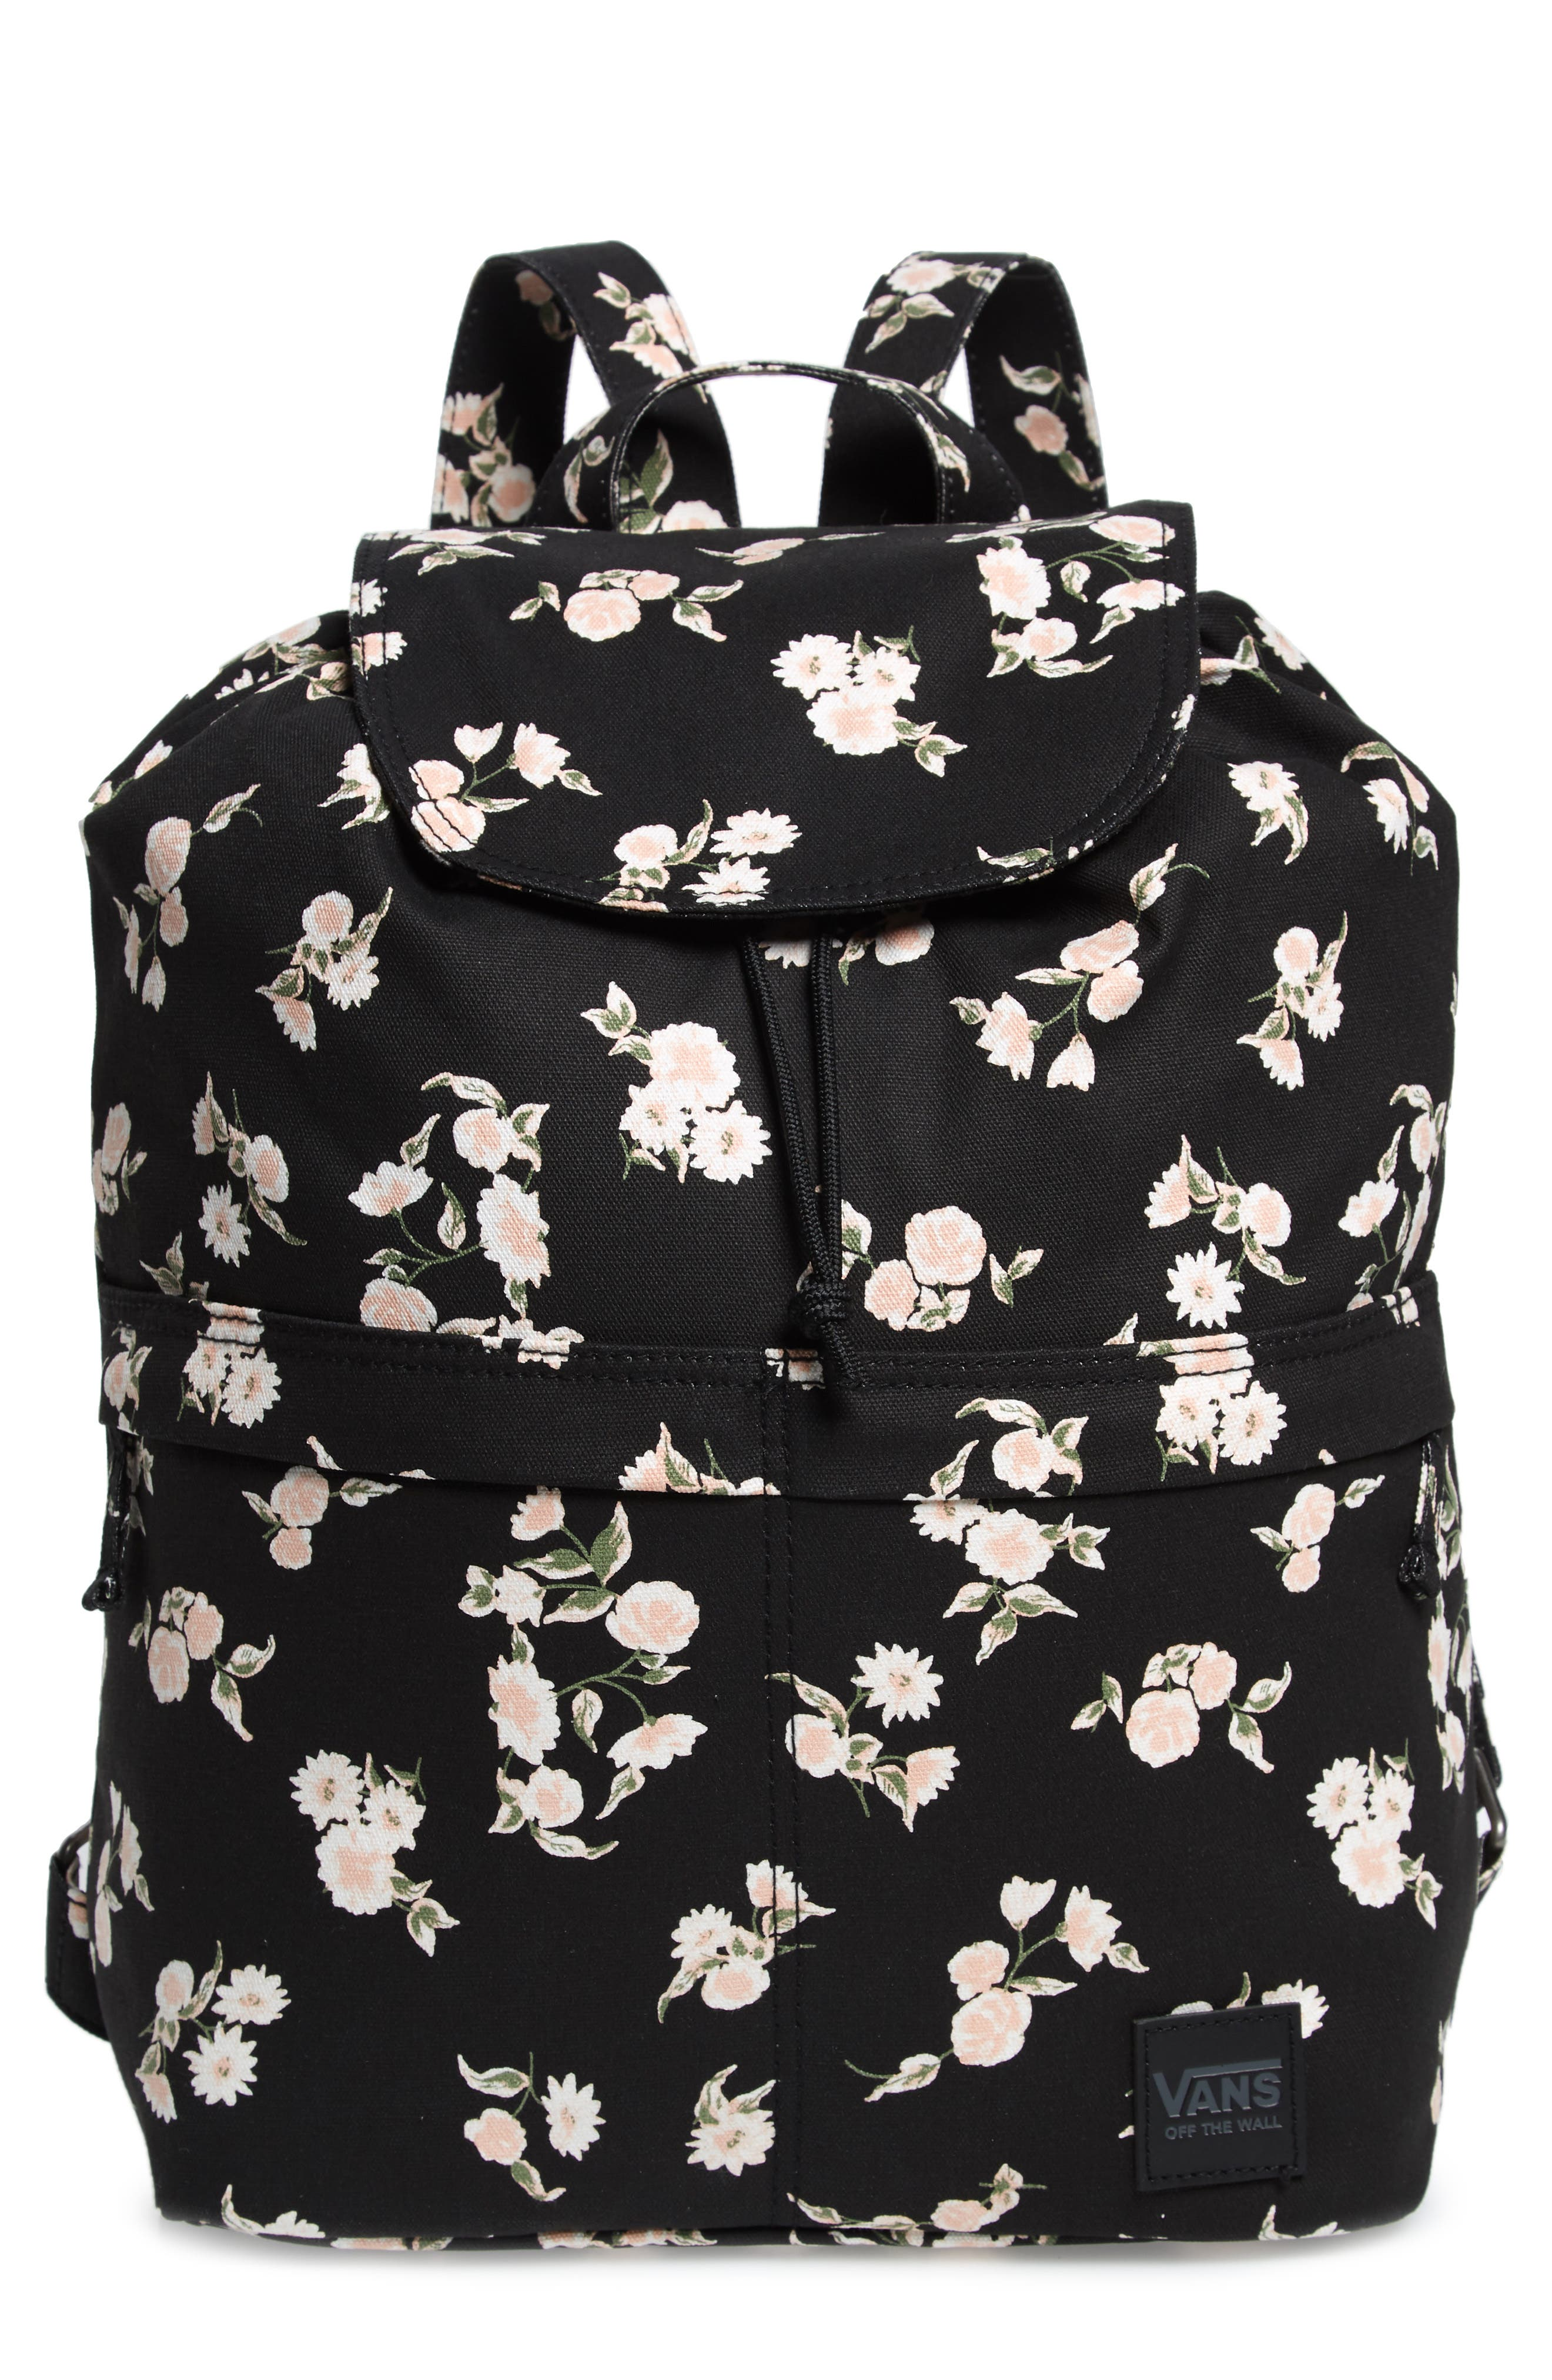 Lakeside Floral Print Backpack,                             Main thumbnail 1, color,                             SUNDAZE FLORAL